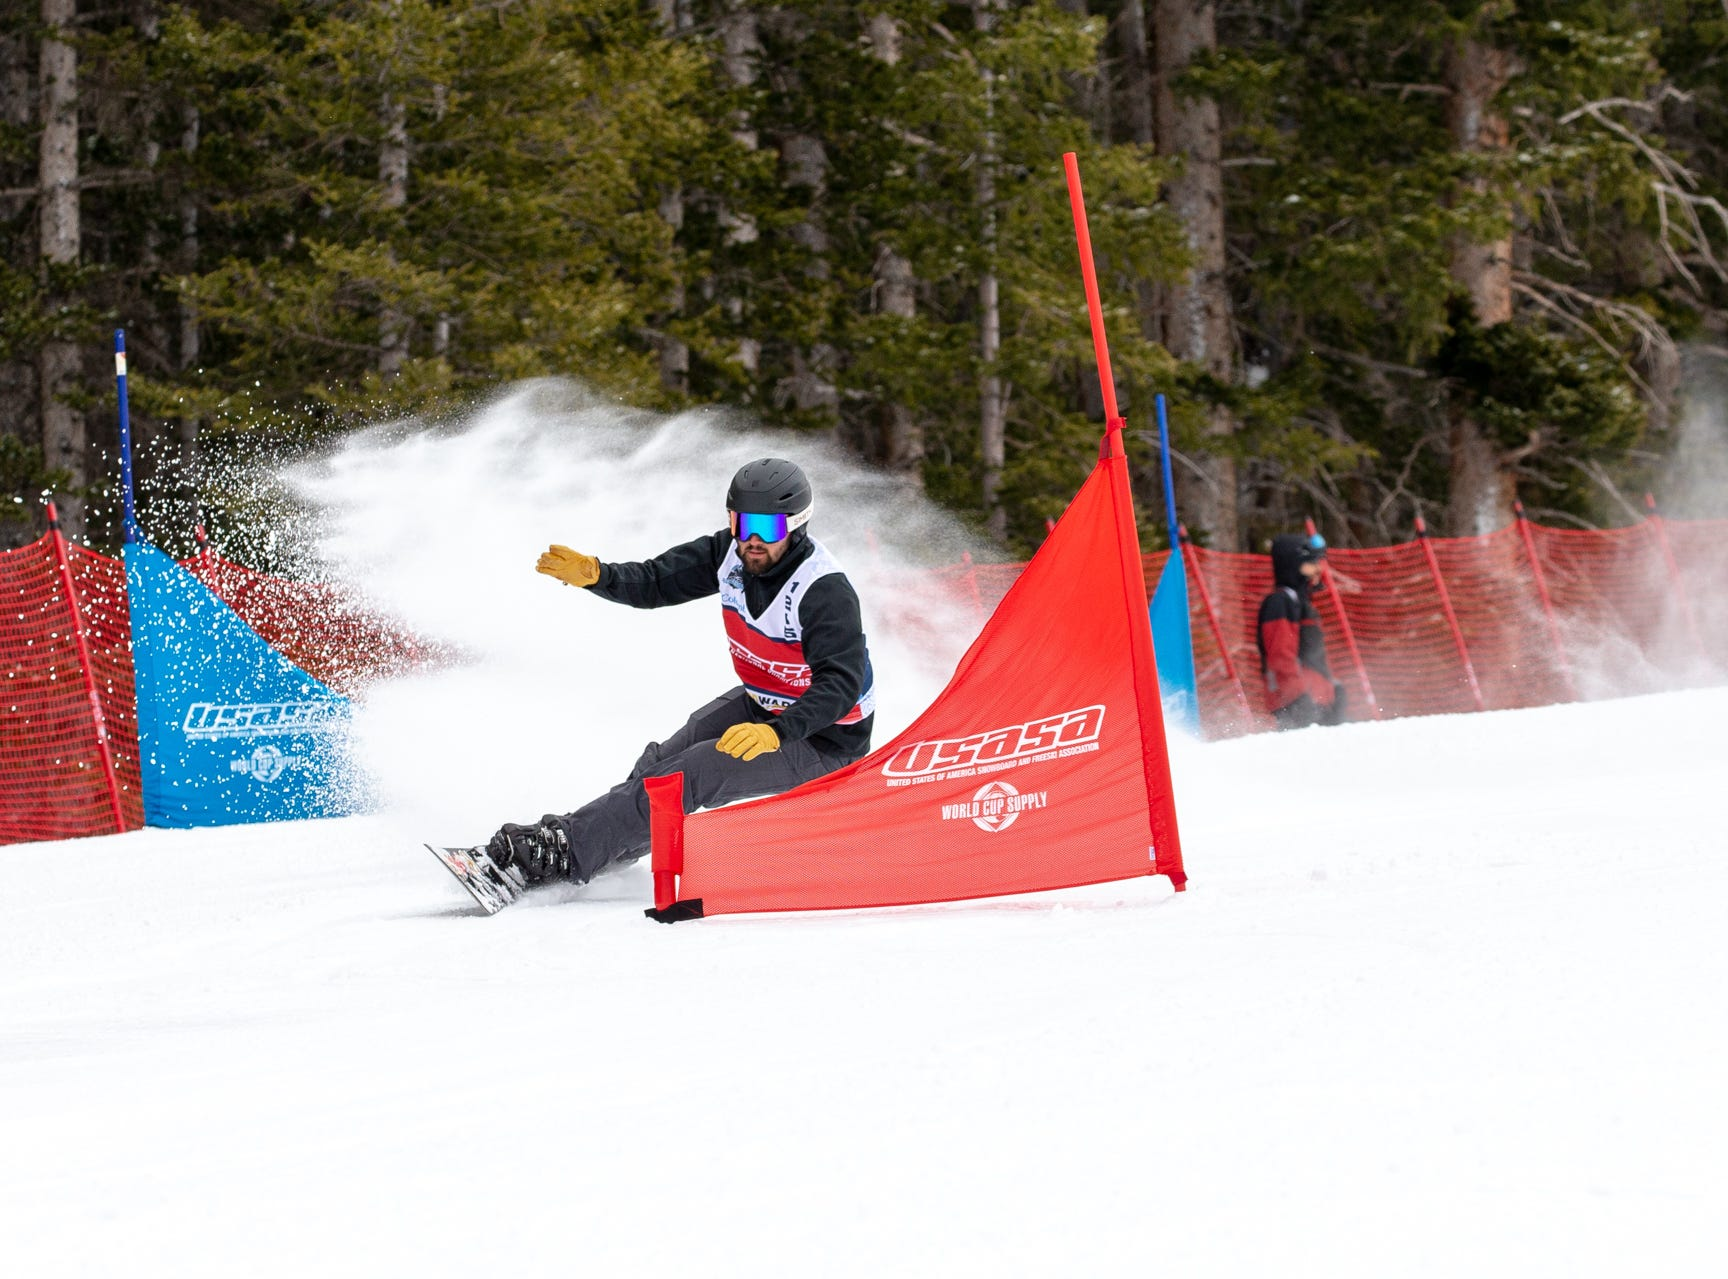 Foothill grad Justin Youngman / North State snowboarders compete at the 2019 USASA National Championships at Copper Mountain in Colorado.